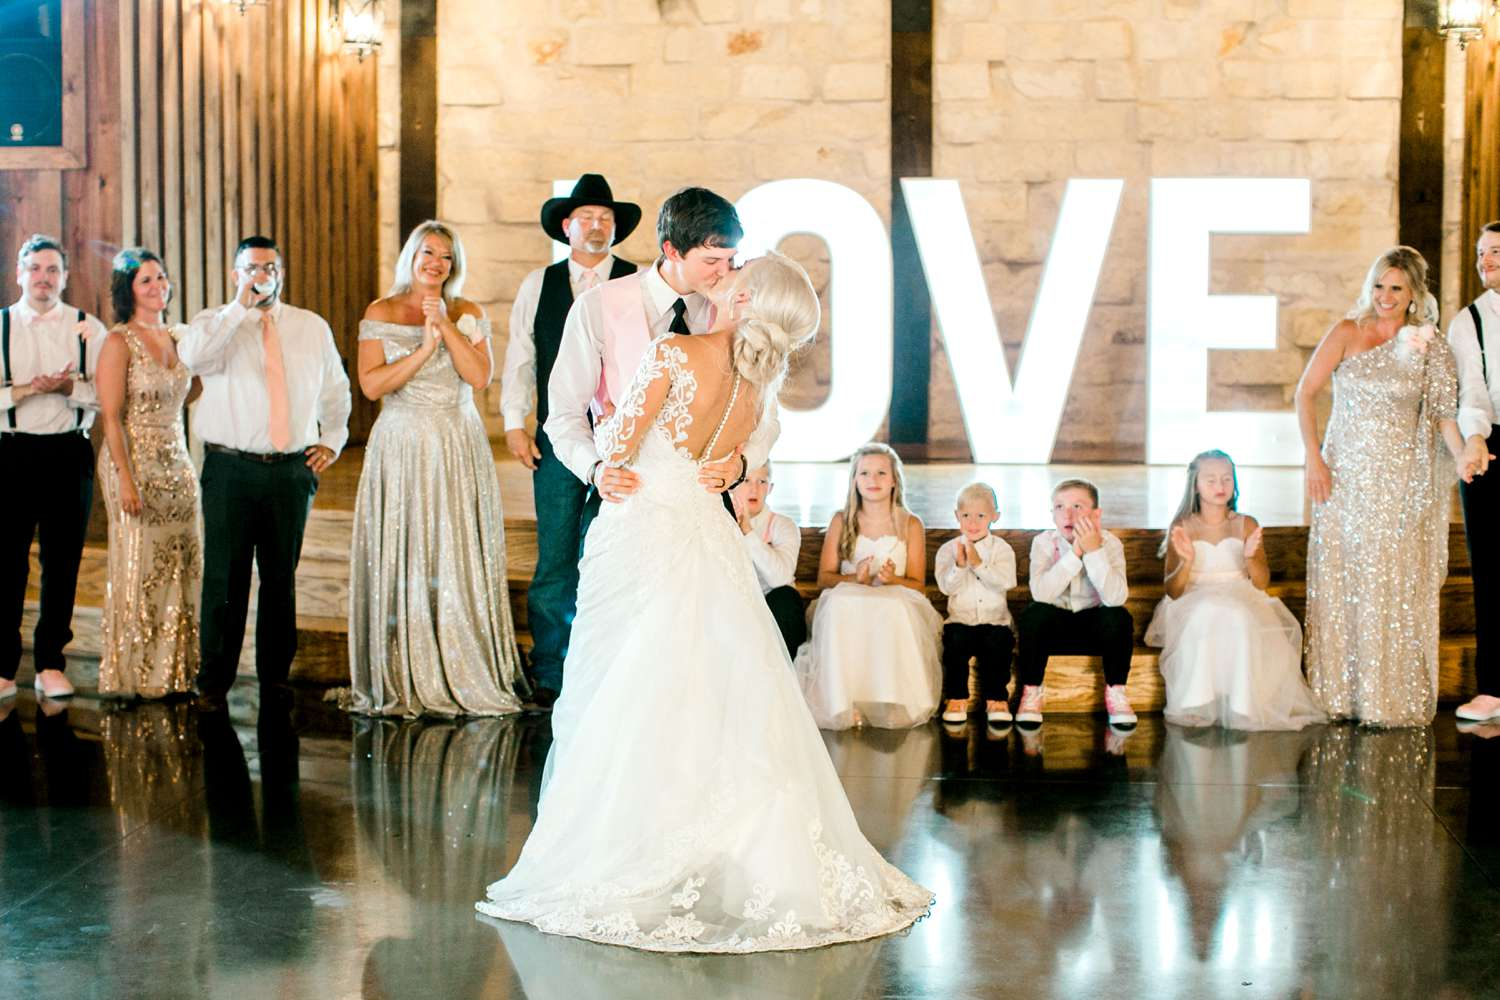 JESSICA+LYLE+NEEL+THE_SPRINGS_EVENTS_WEDDING_OKLAHOMA_ALLEEJ_PHOTOGRAPHER_0125.jpg